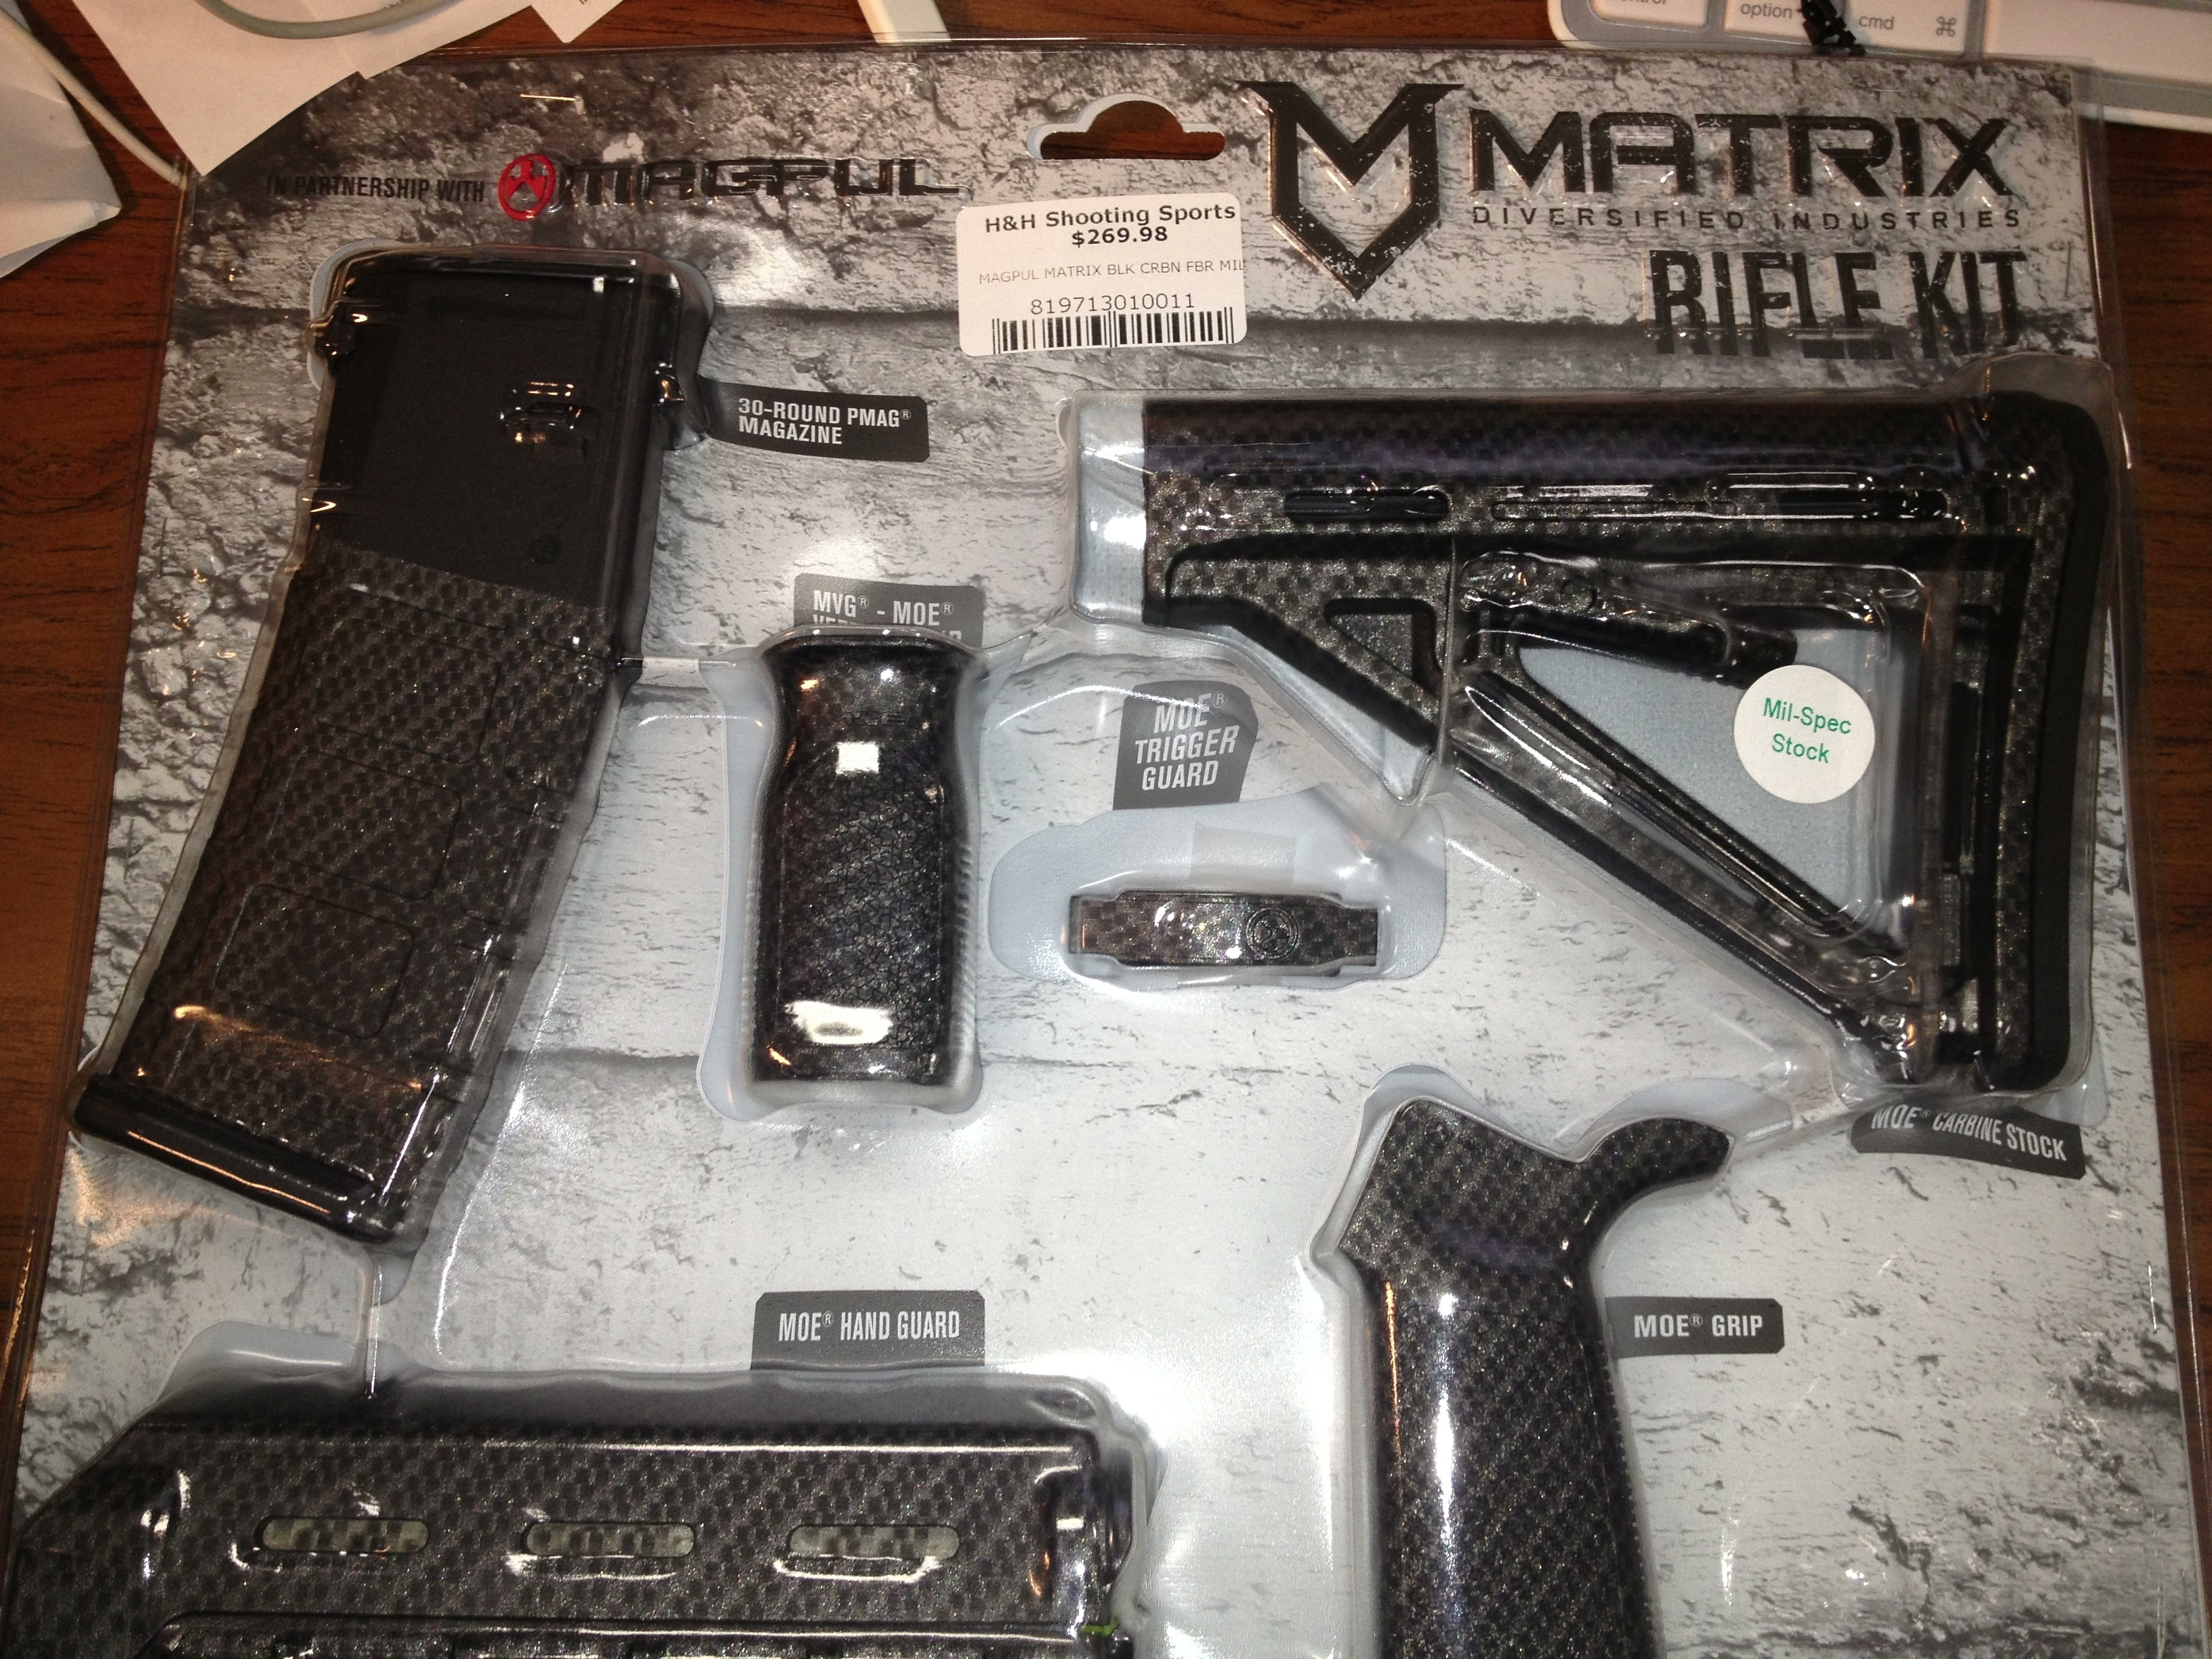 Matrix Rifle Kits With 30 Round Pmag Now At H Amp H Wireshots Com